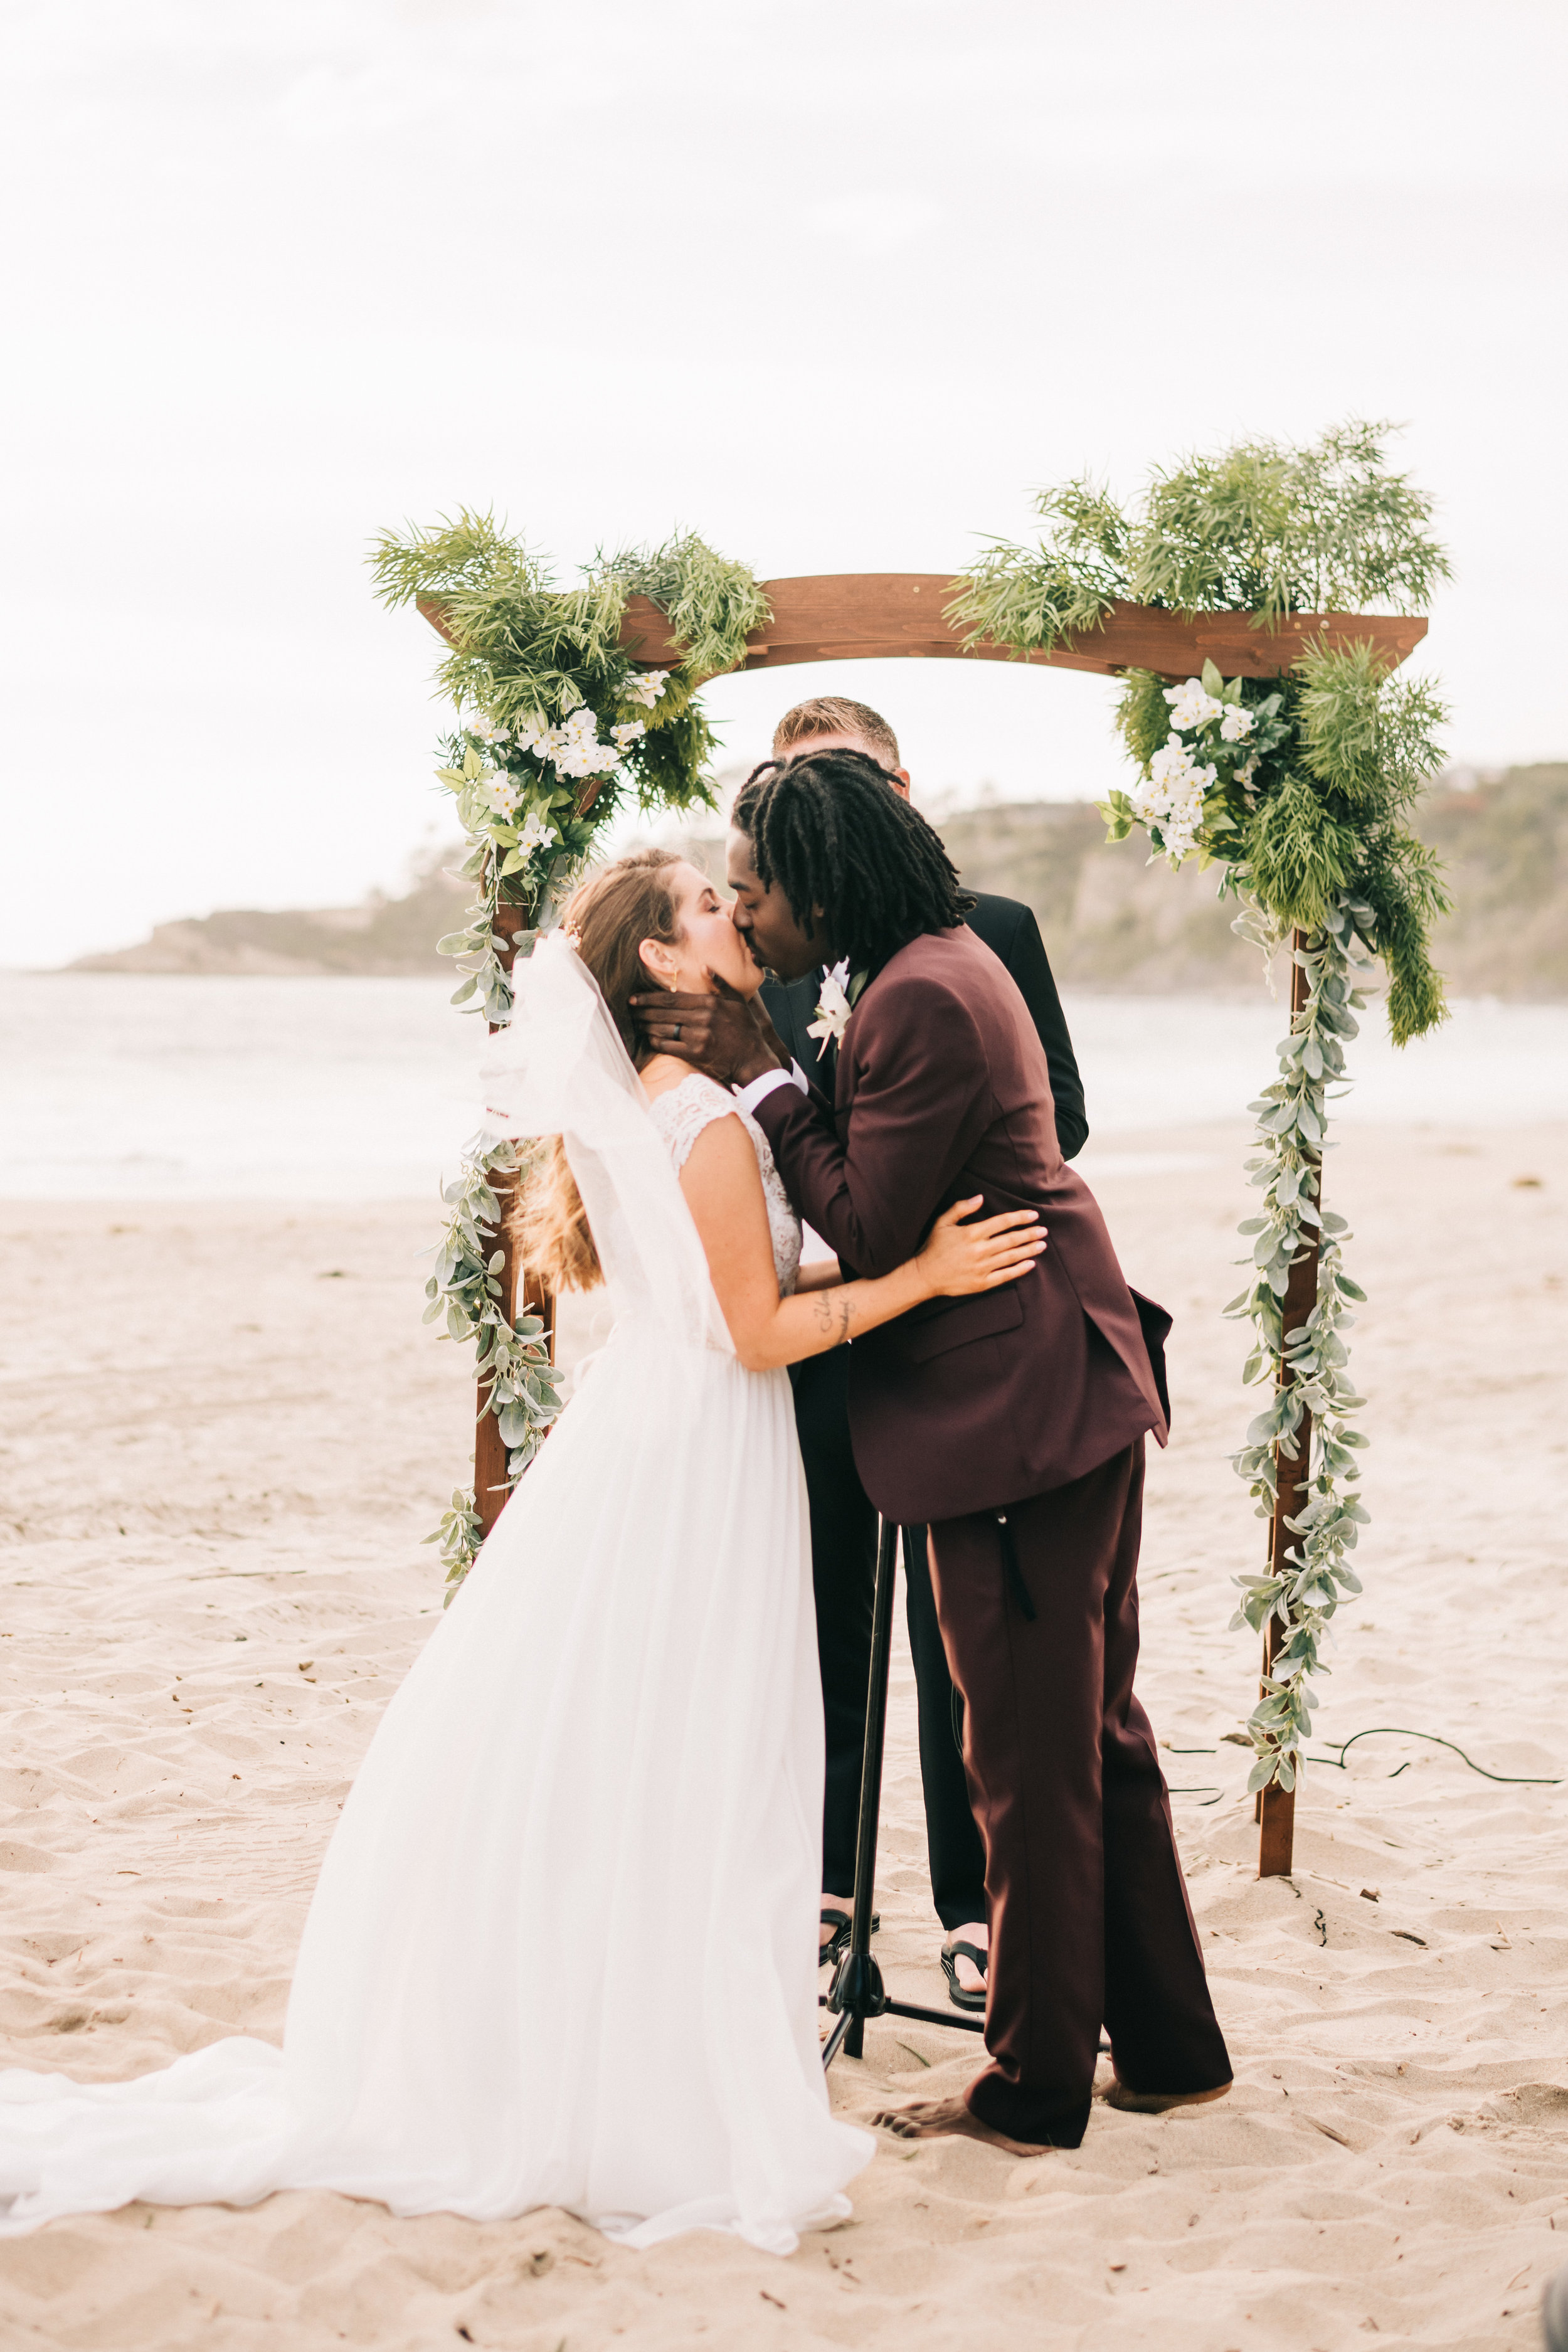 southern california laguna beach salt creek beach los angeles socal boho bay area akland san francisco engagement wedding nontraditional fun creative eclectic photographer magic-600.jpg